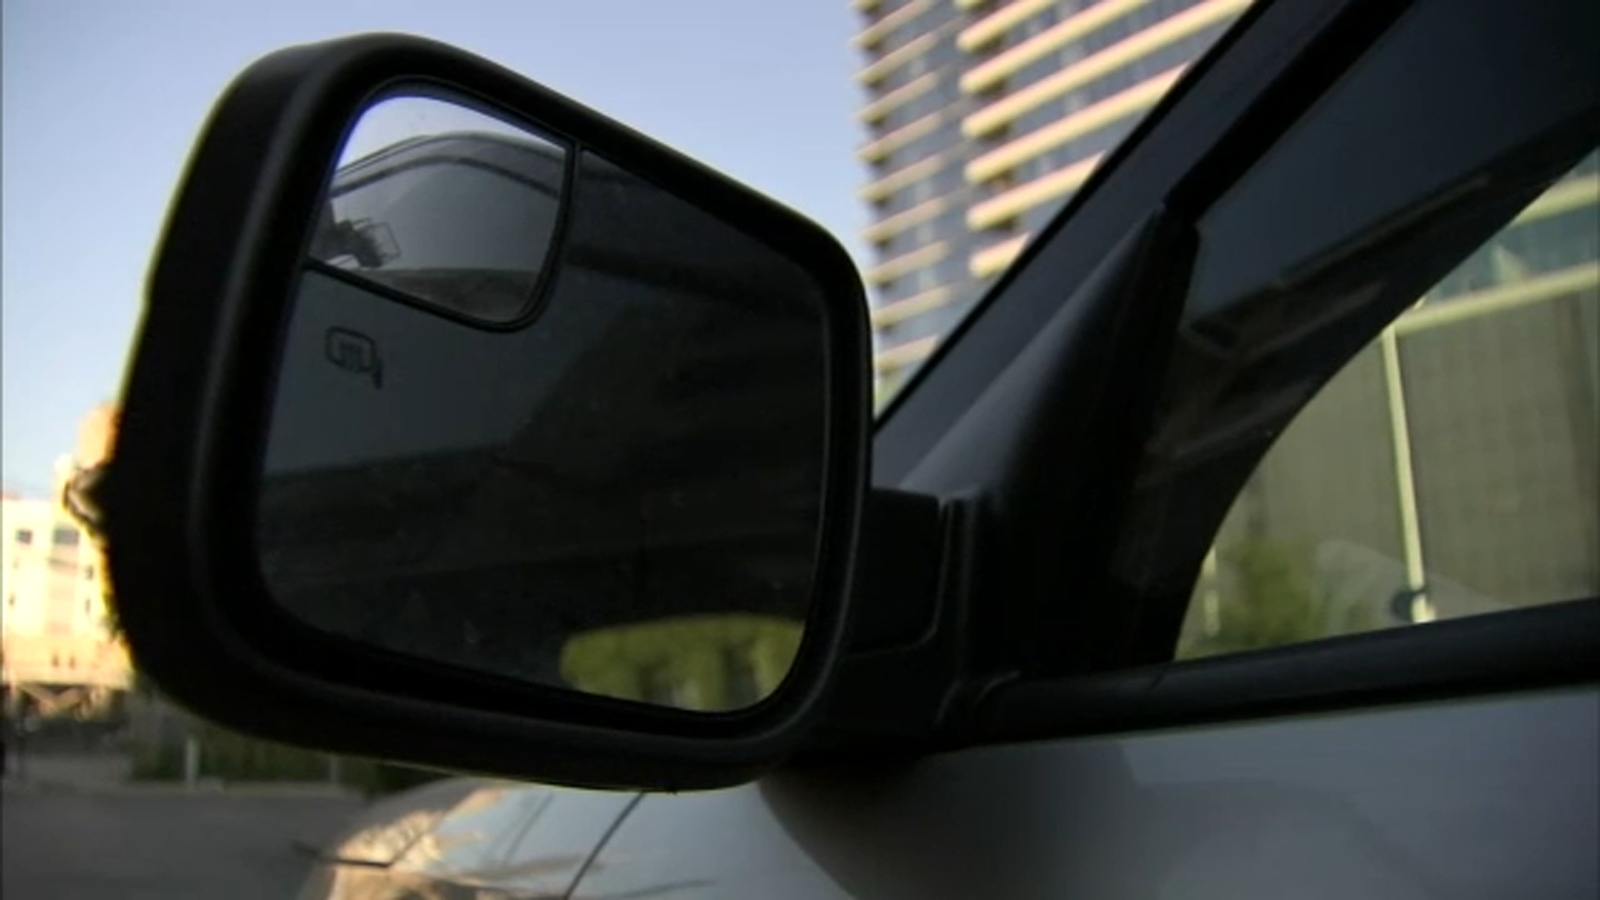 Carjackers fake accidents in attempt to steal your car; tips to stay safe, help police